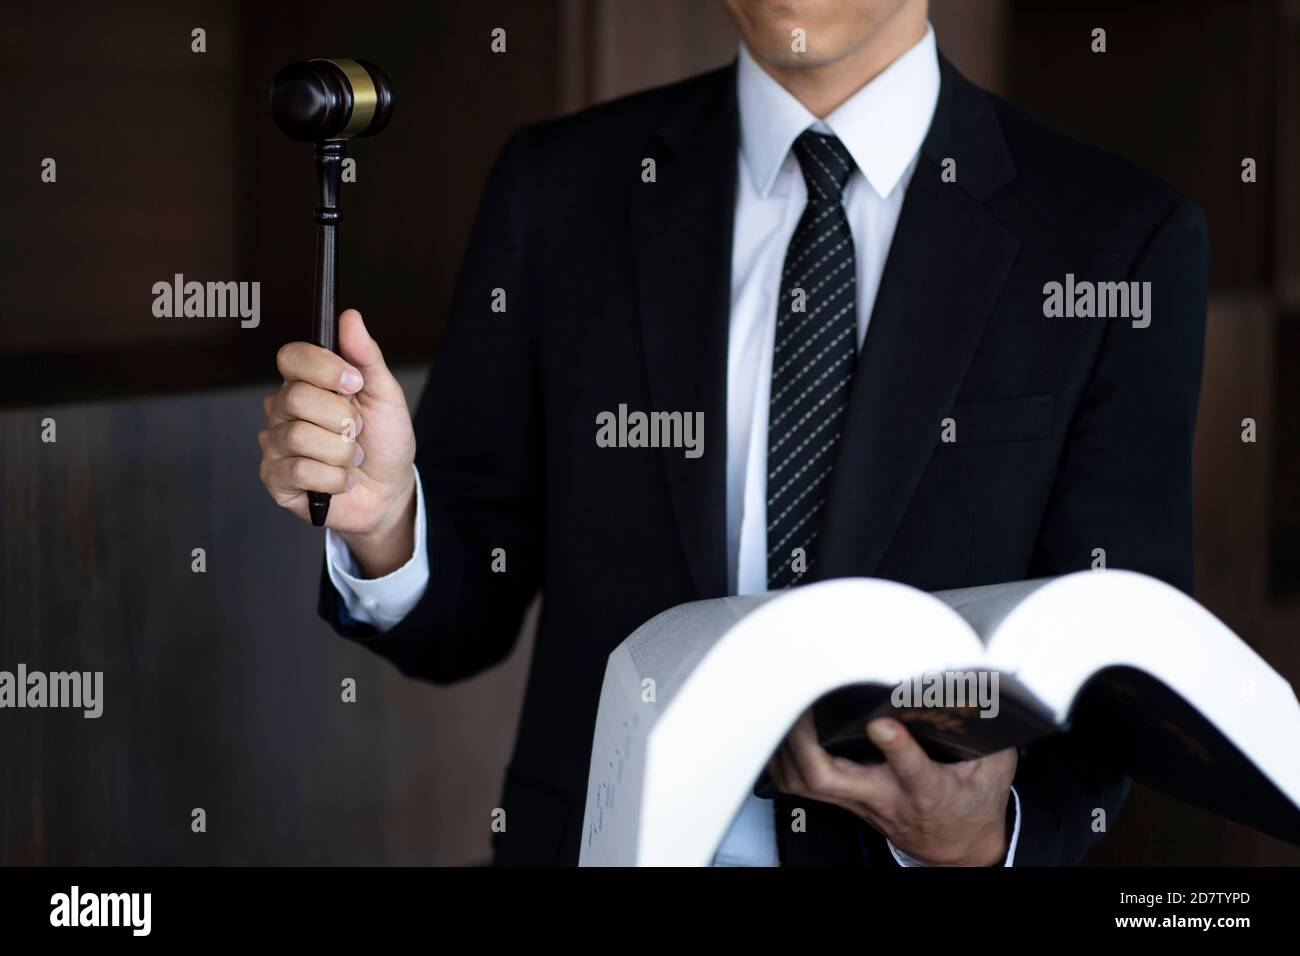 Lawyer holding gavel and law book Stock Photo